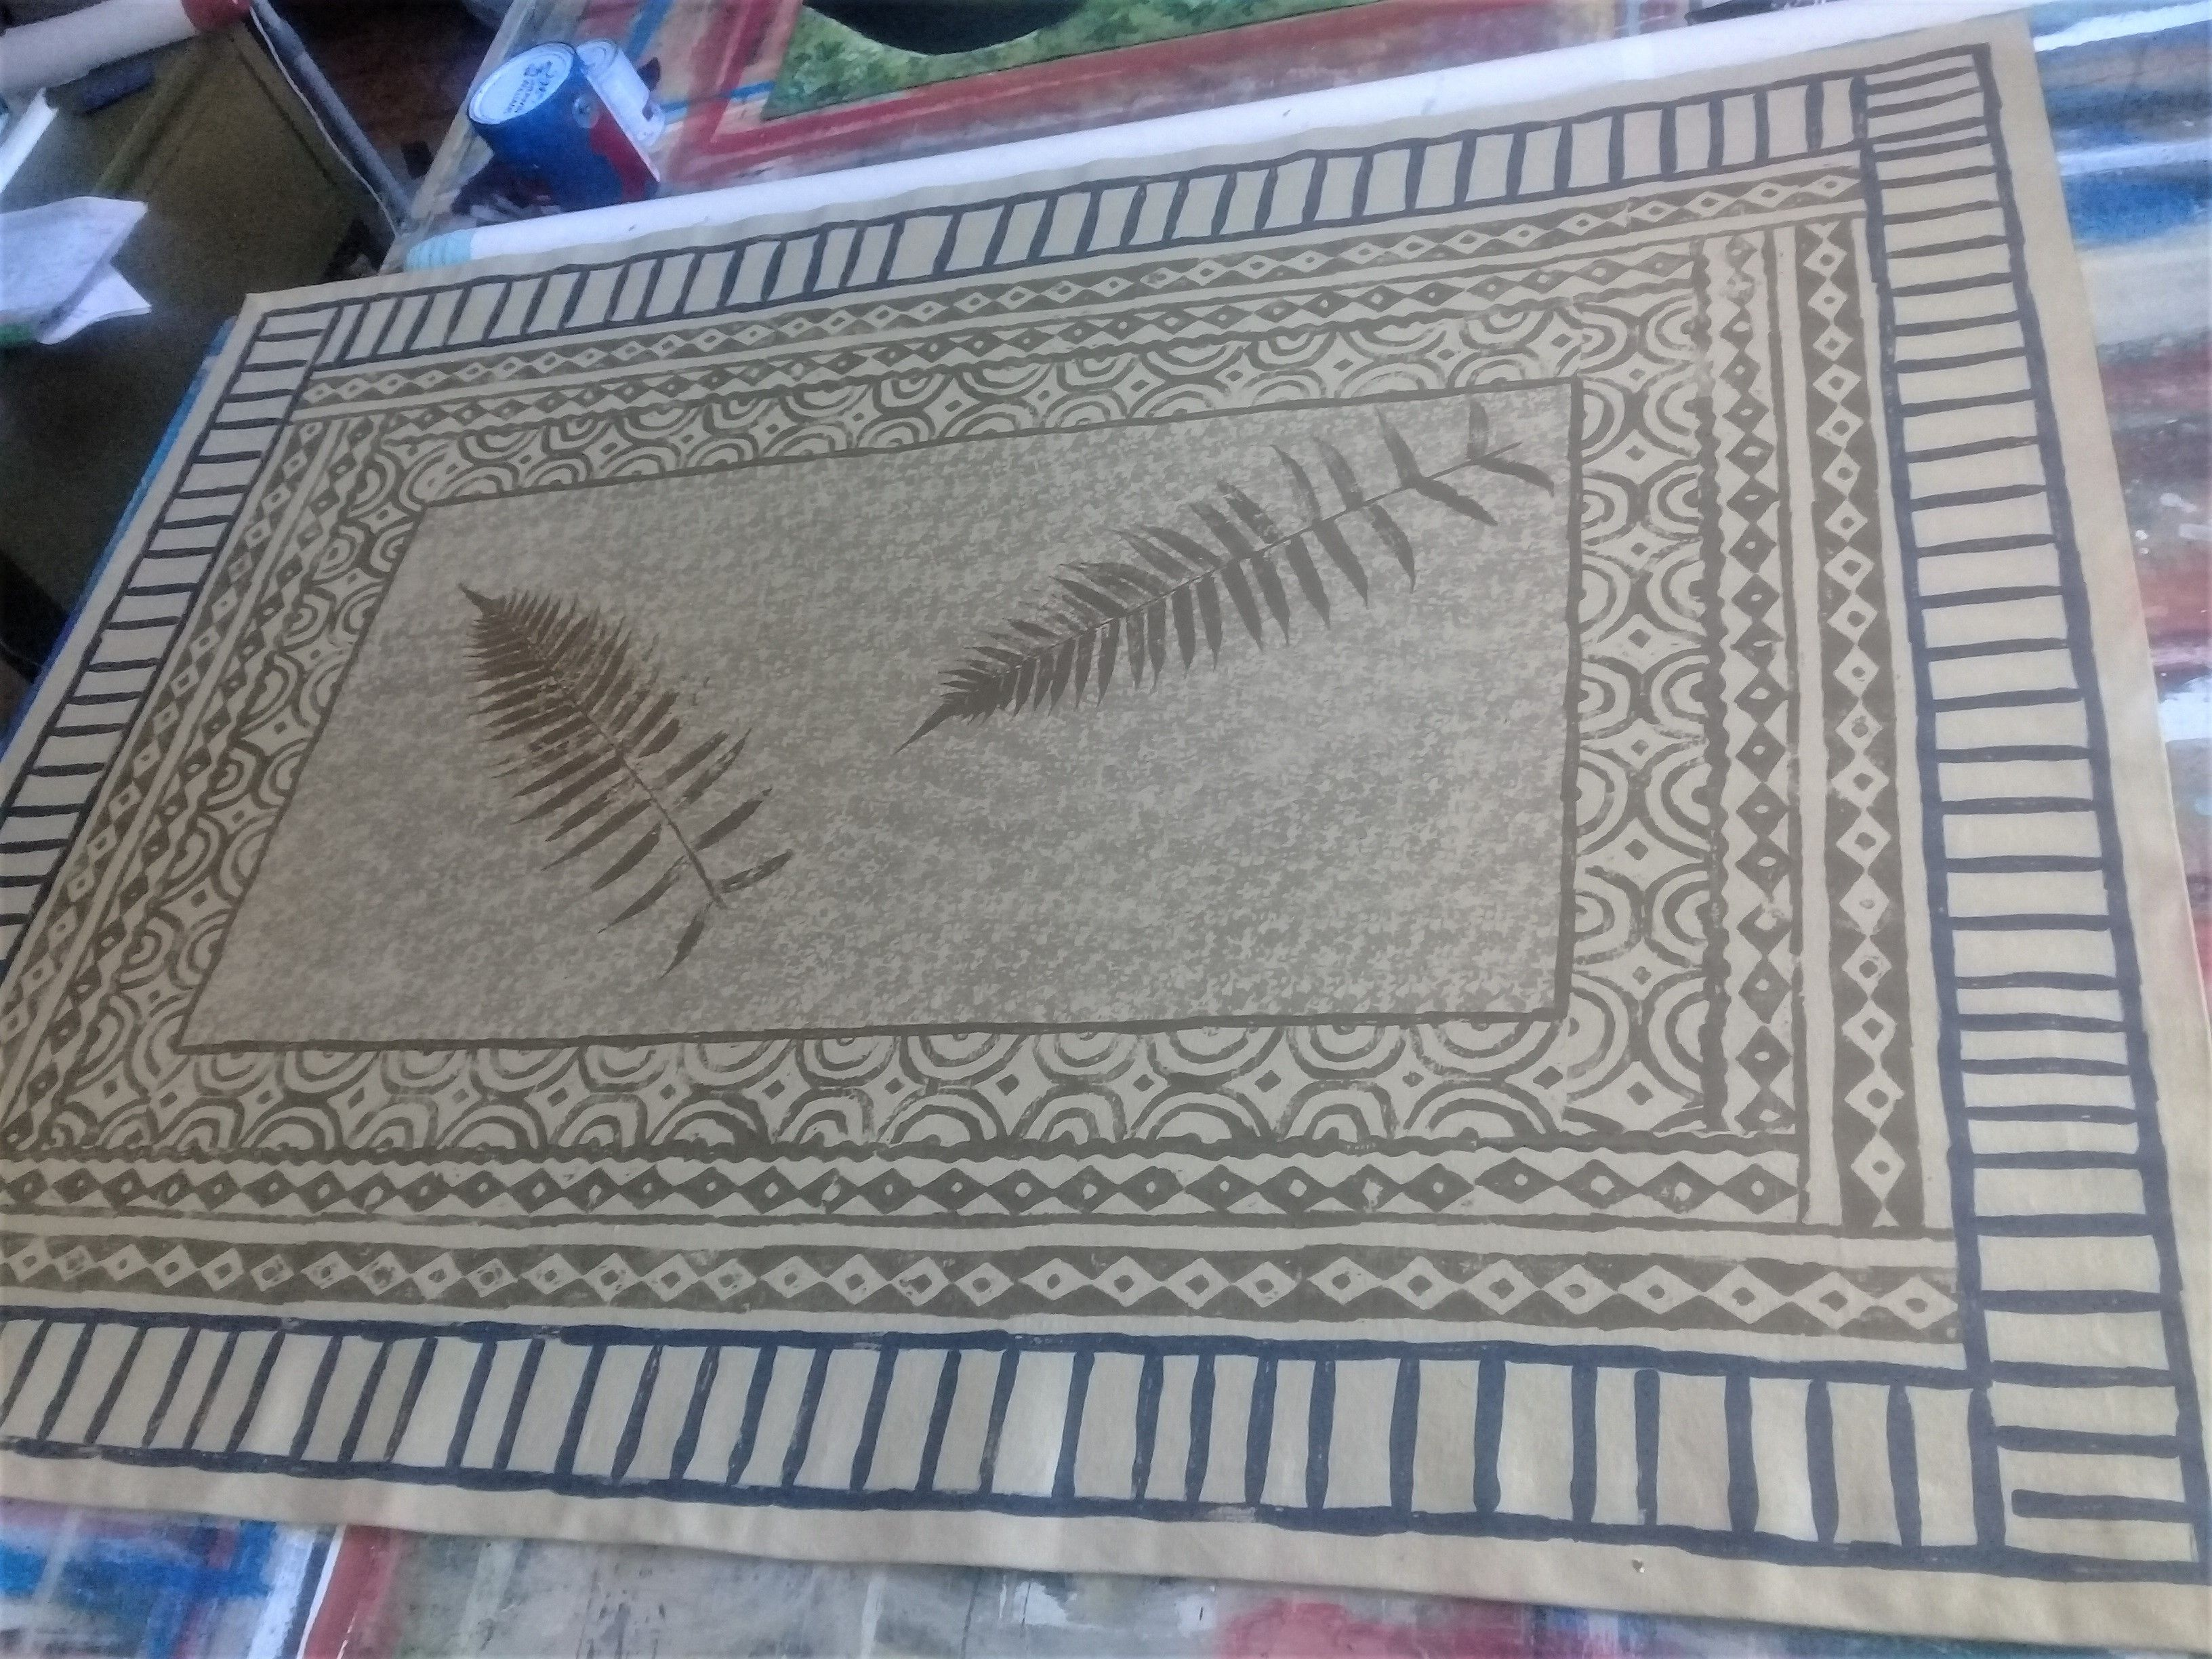 This Custom Canvas Rug Was Made Entirely With Stamps Including Sea Sponge It Was Taken From A Design On A Runner Rug S Custom Area Rugs Custom Rugs Floor Art